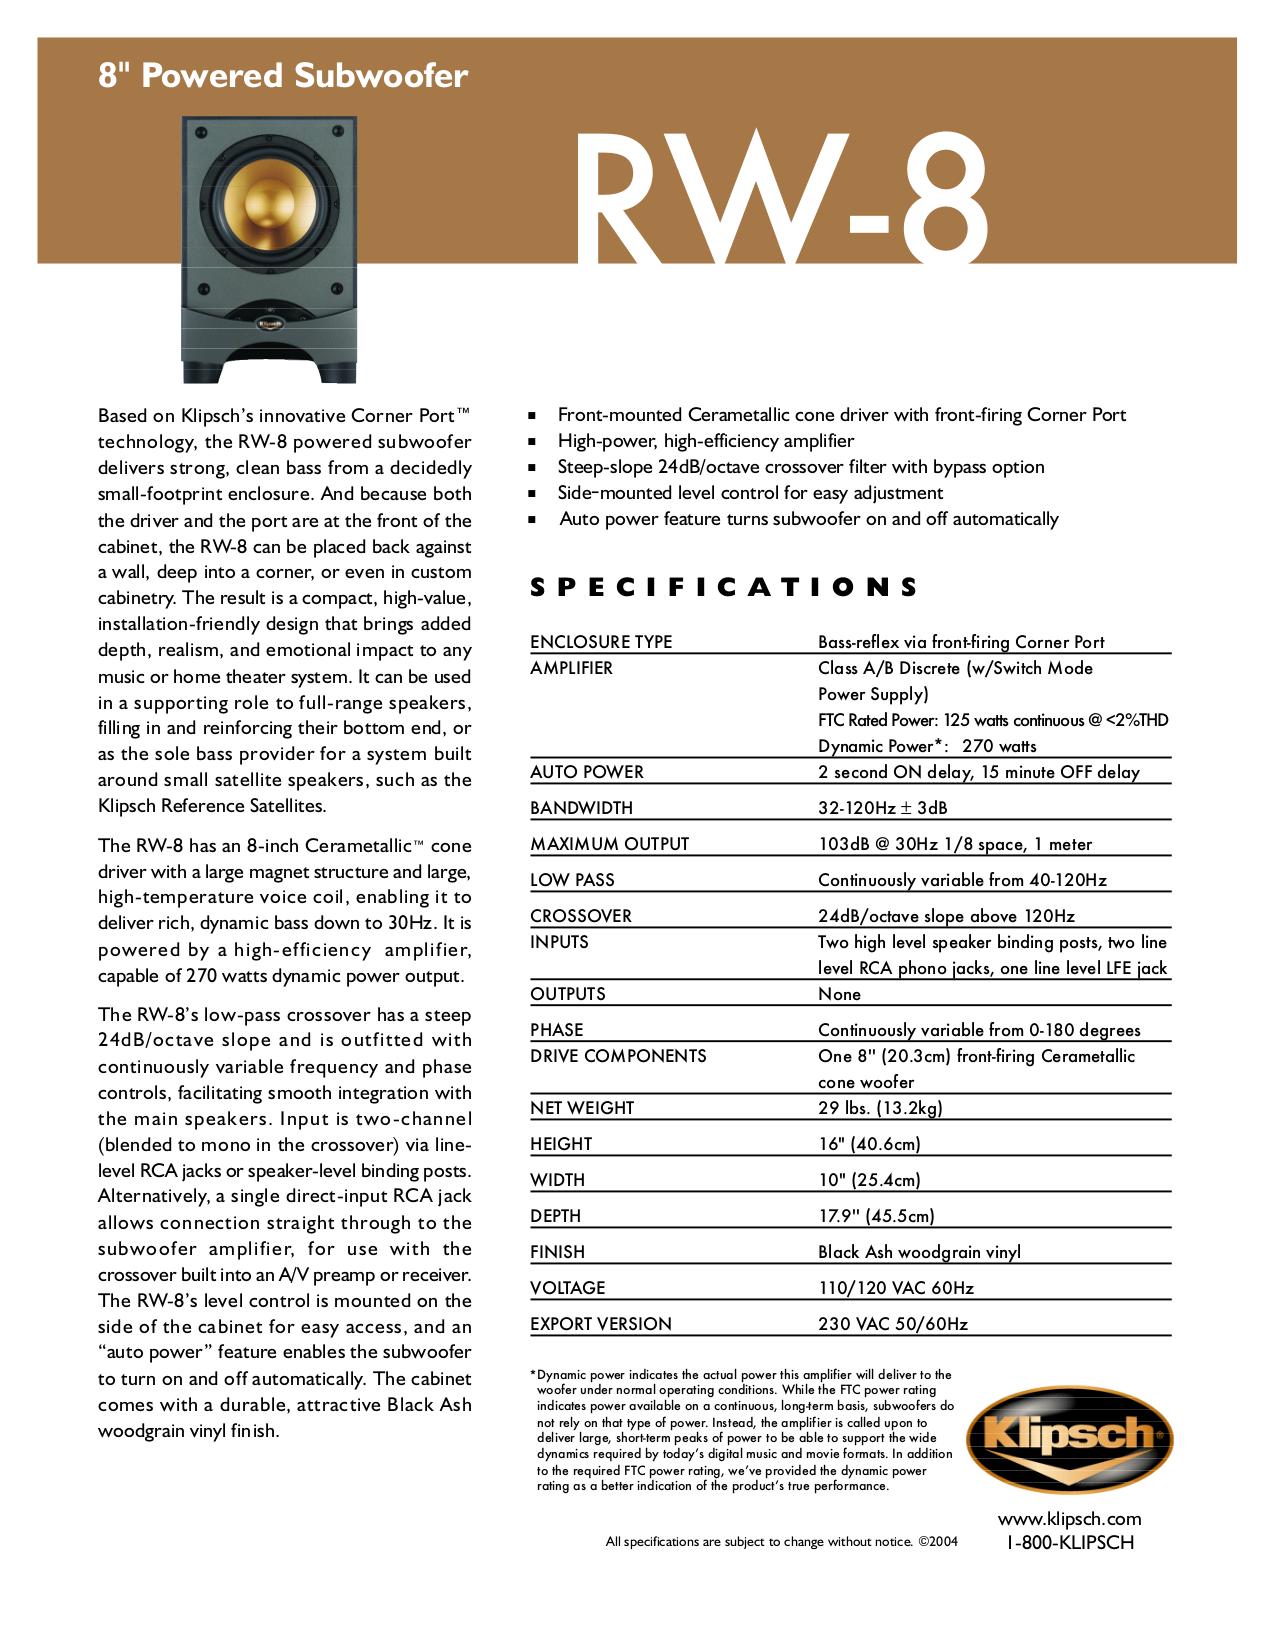 Klipsch Rb25 Wiring Diagram Circuit Symbols Rb25det Download Free Pdf For Rw 8 Subwoofer Manual Rh Umlib Com Simple Diagrams